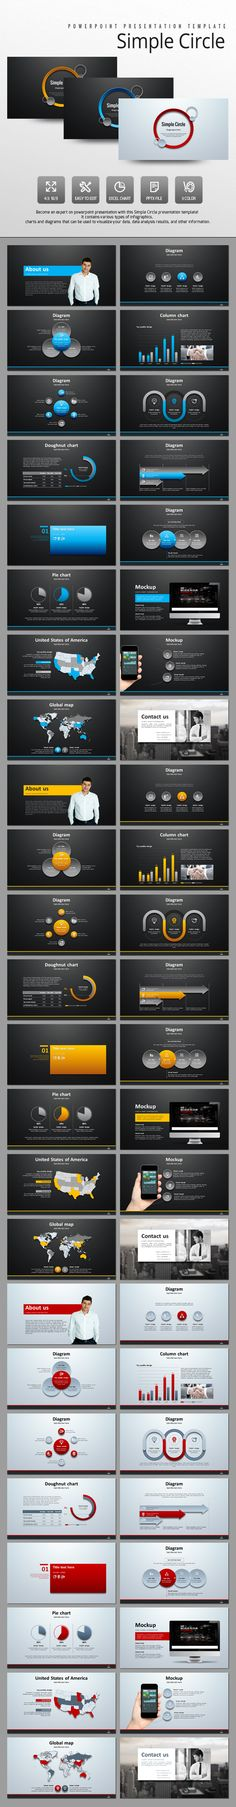 royal ~ hotel presentation template - creative powerpoint, Presentation templates